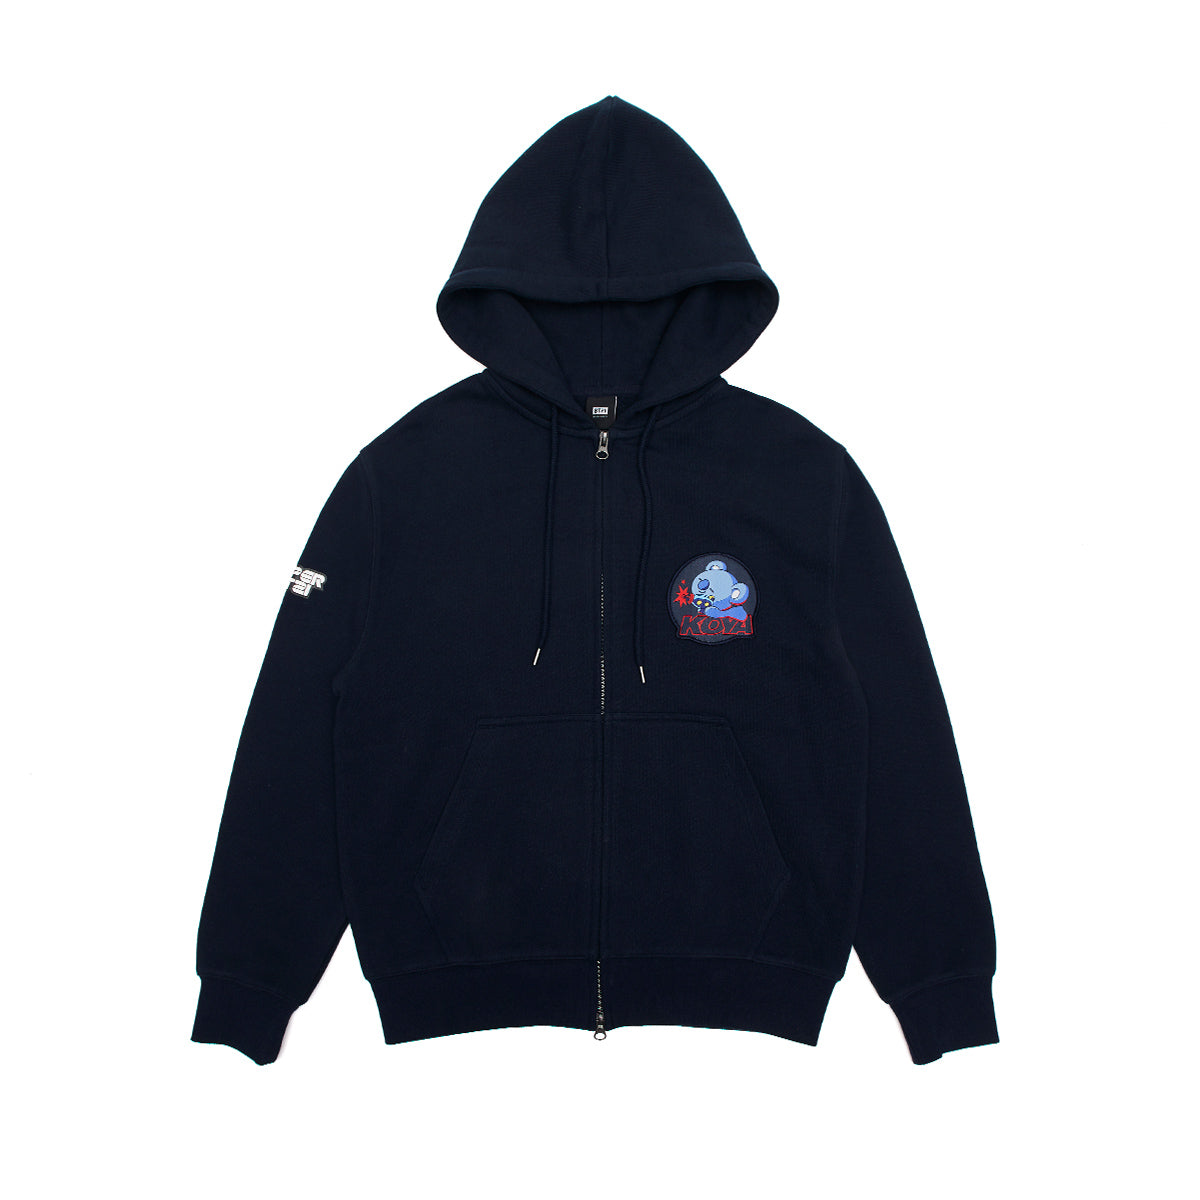 BT21 KOYA Space Squad Zip Up Hooded